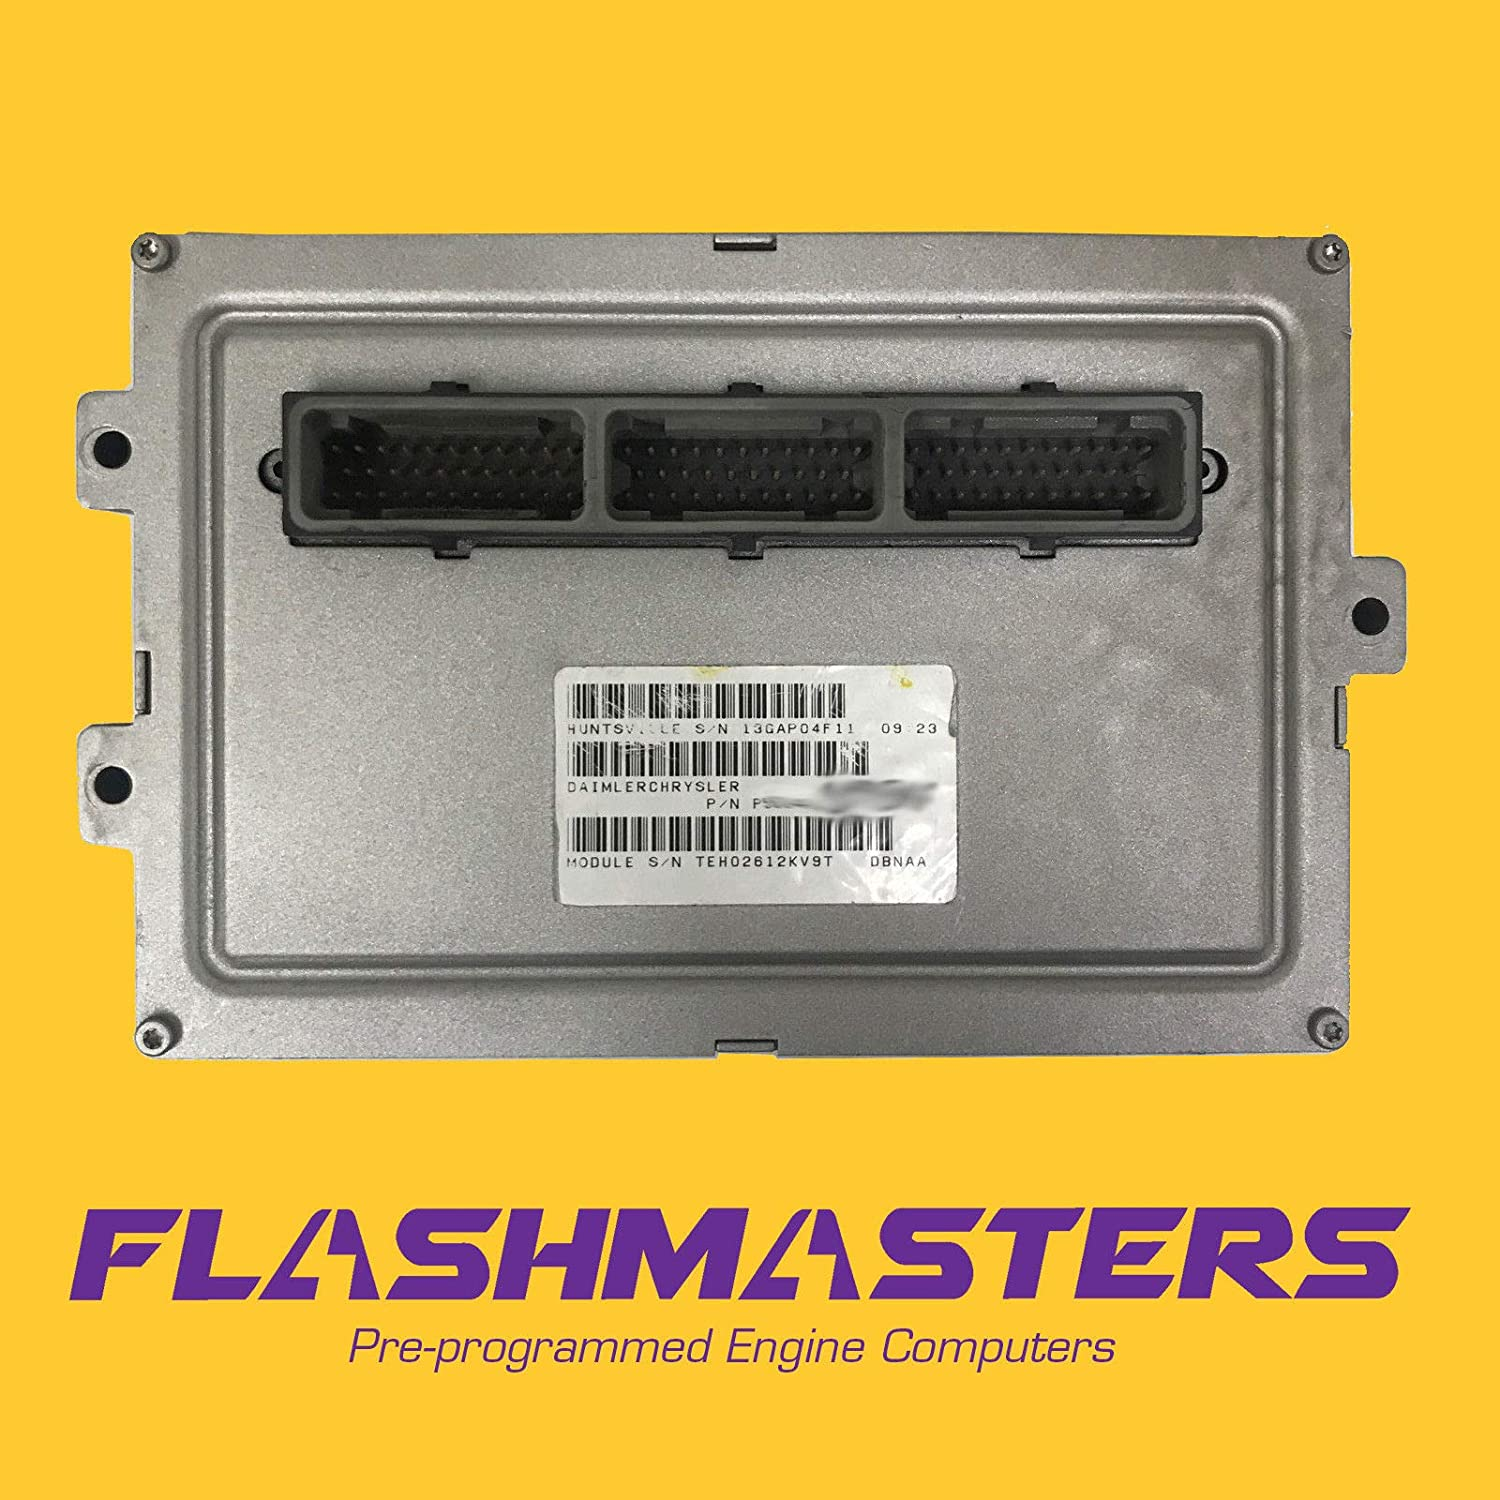 Flashmasters 2003 Grand Cherokee 4.0L Computer 56044632 ECM PCM ECU Programmed to Your VIN